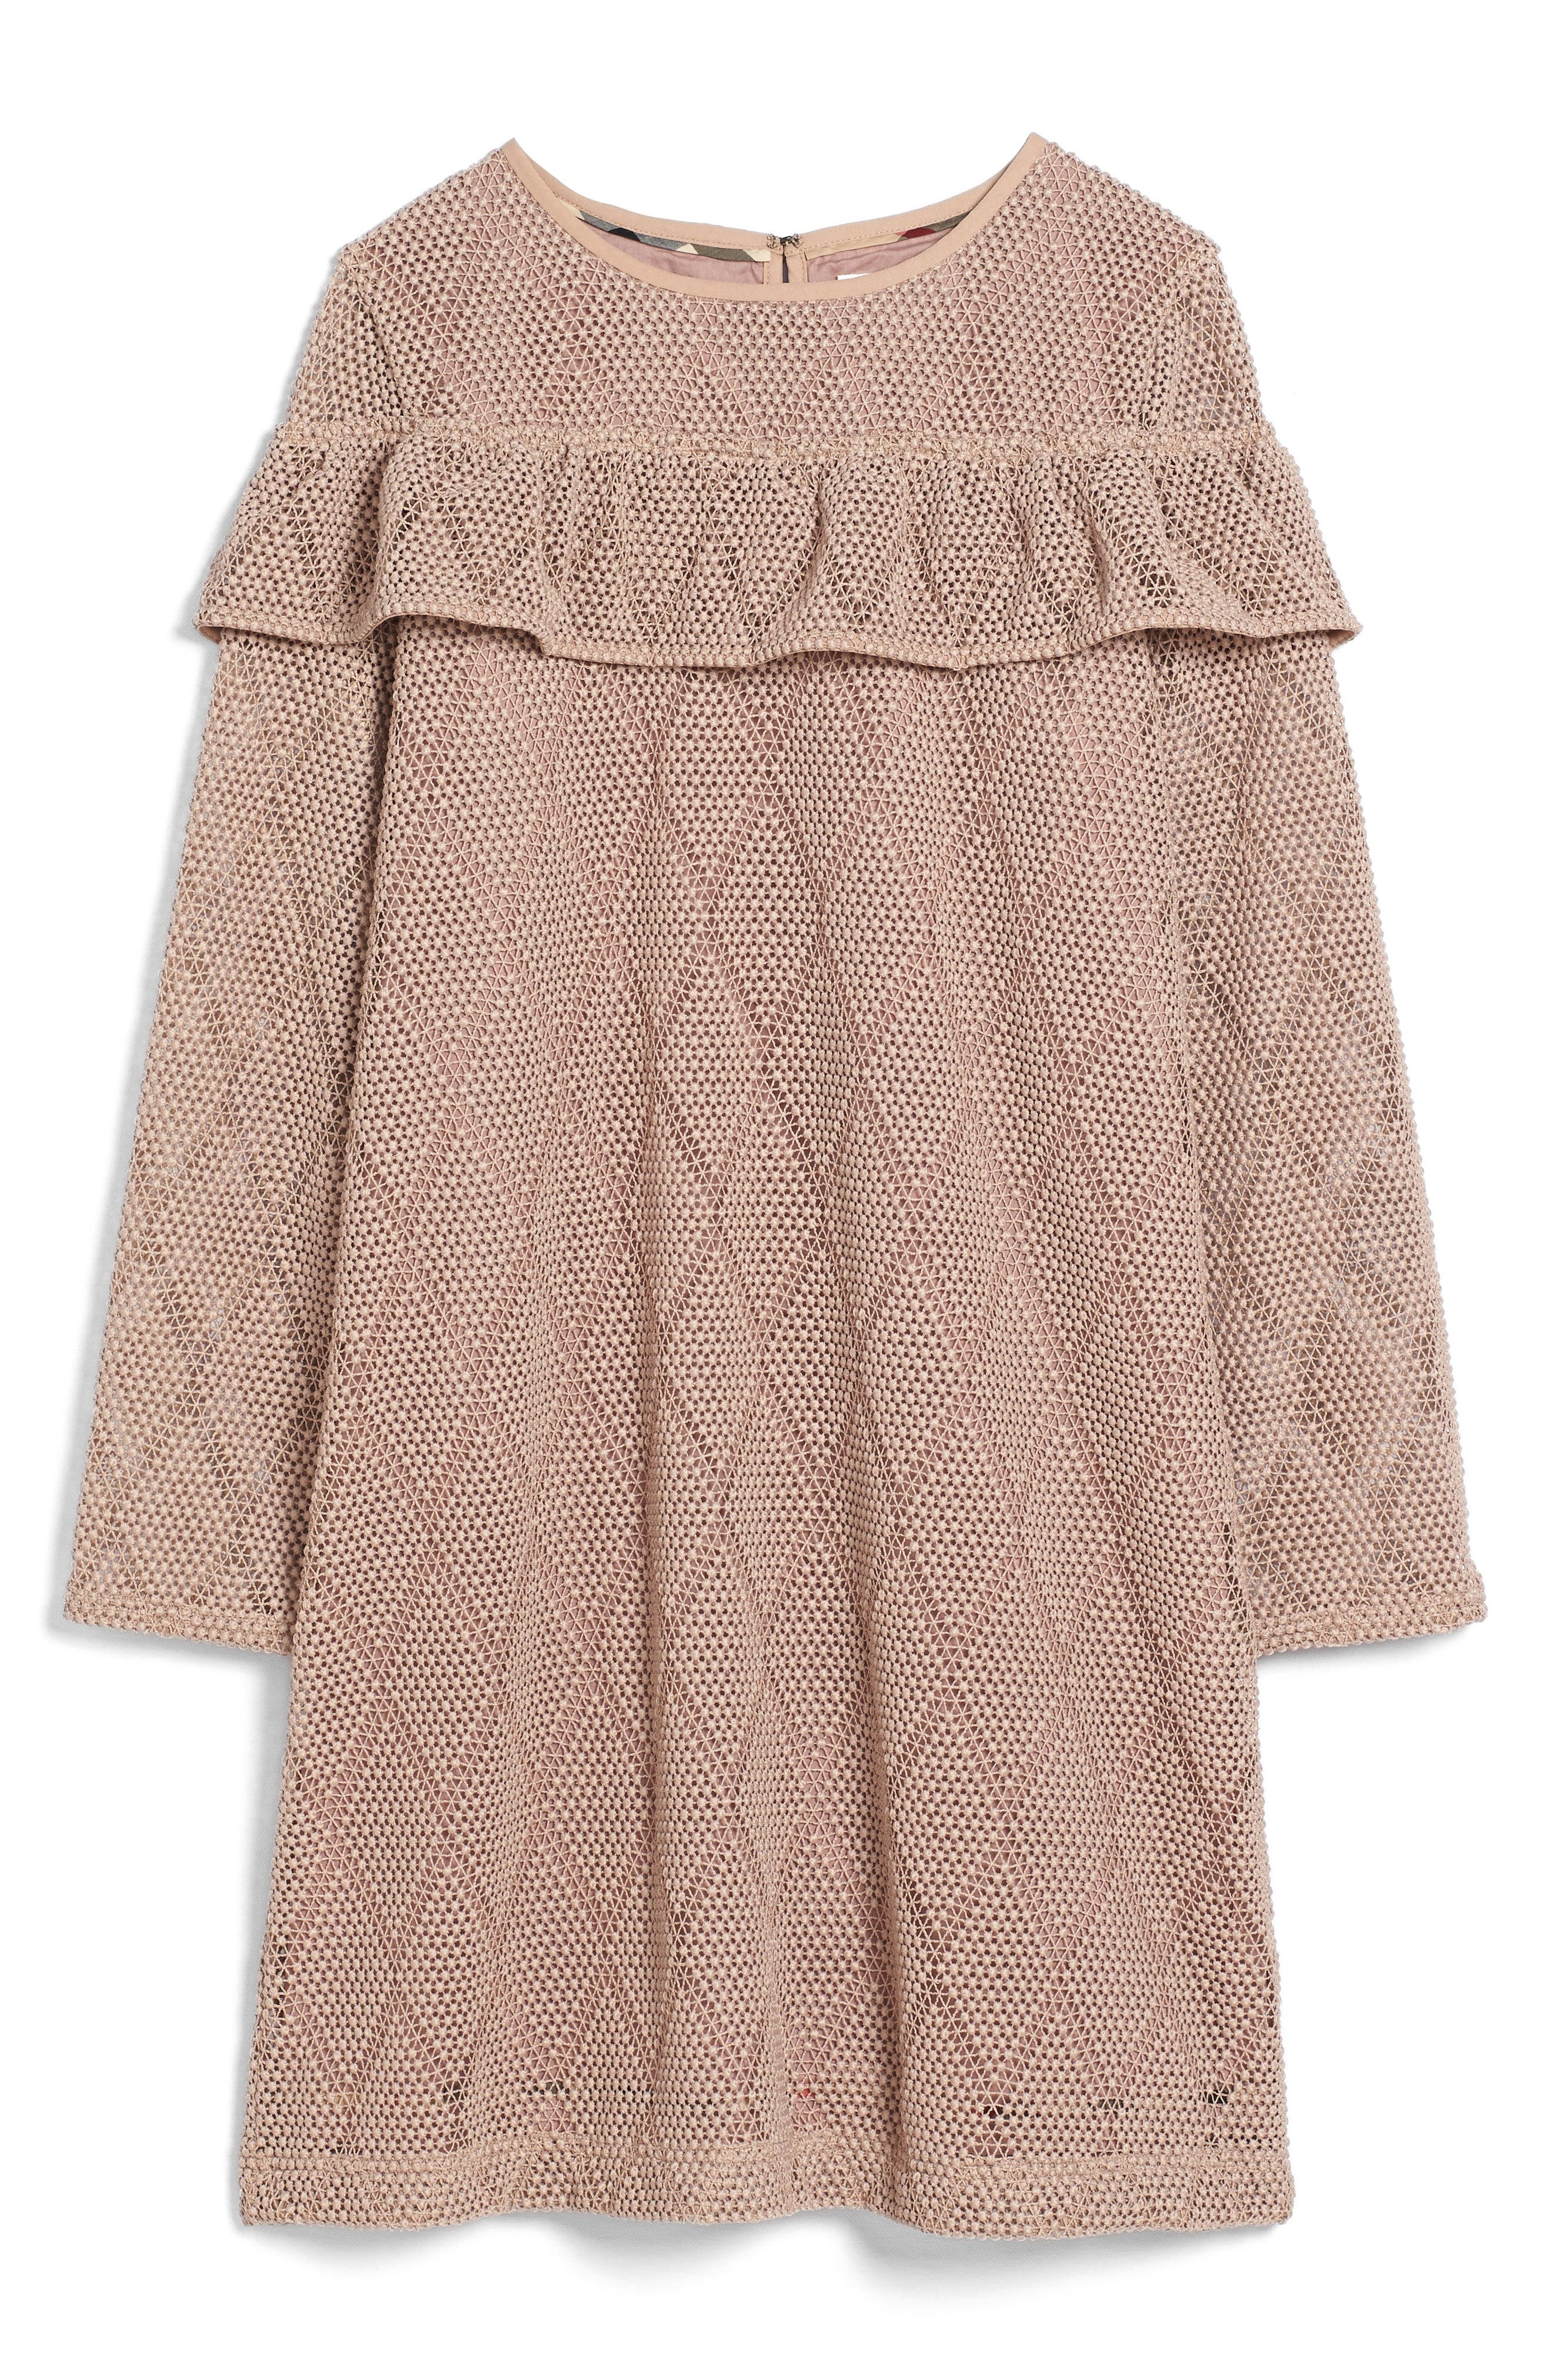 Burberry Sabrina Lace Dress (Little Girls & Big Girls)